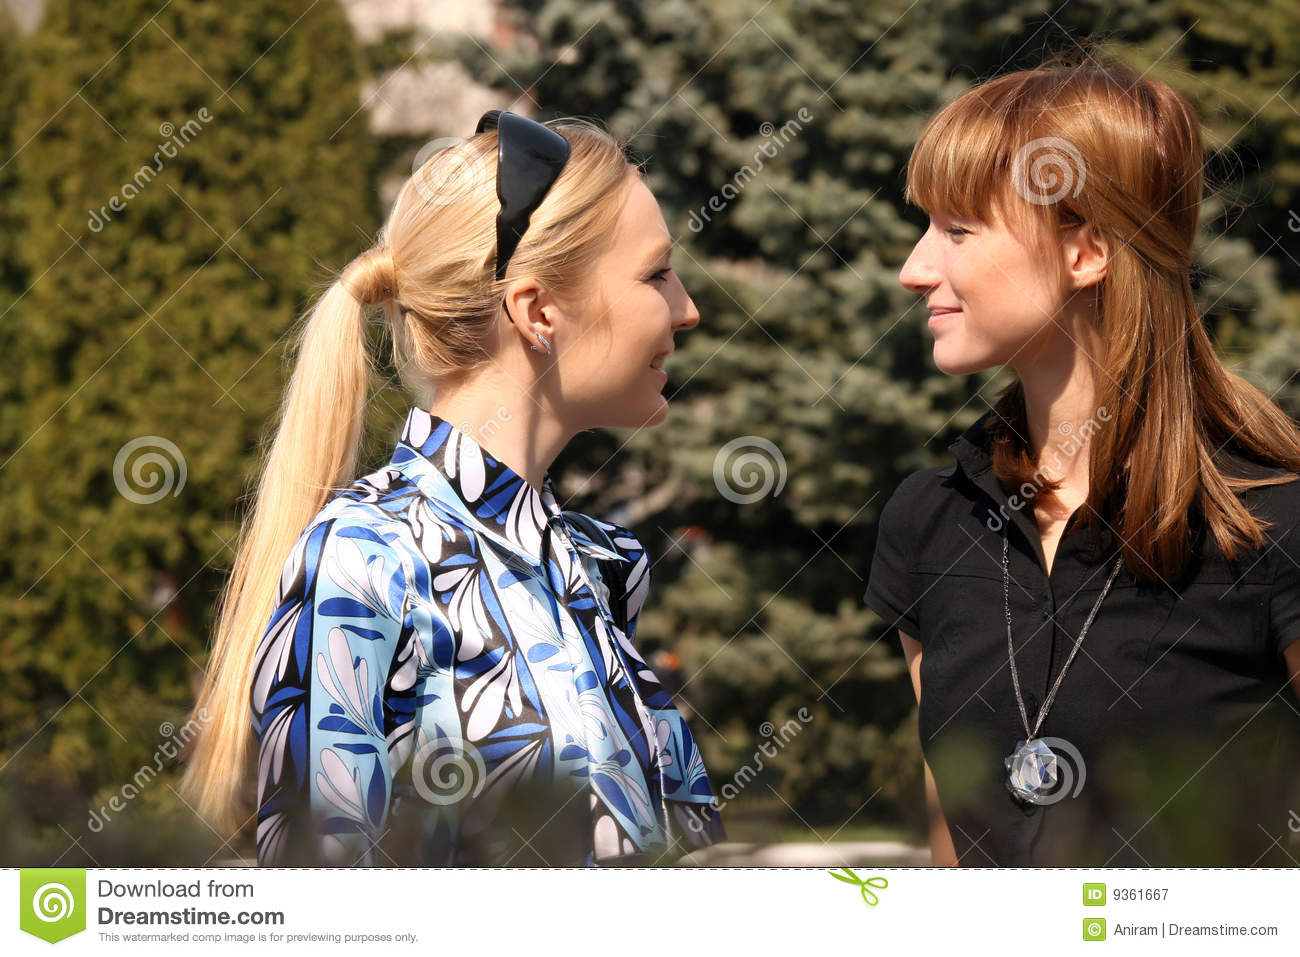 single lesbian women in parks Single lesbian woman - we are leading online dating site for beautiful women and men date, meet, chat, and create relationships with other people.